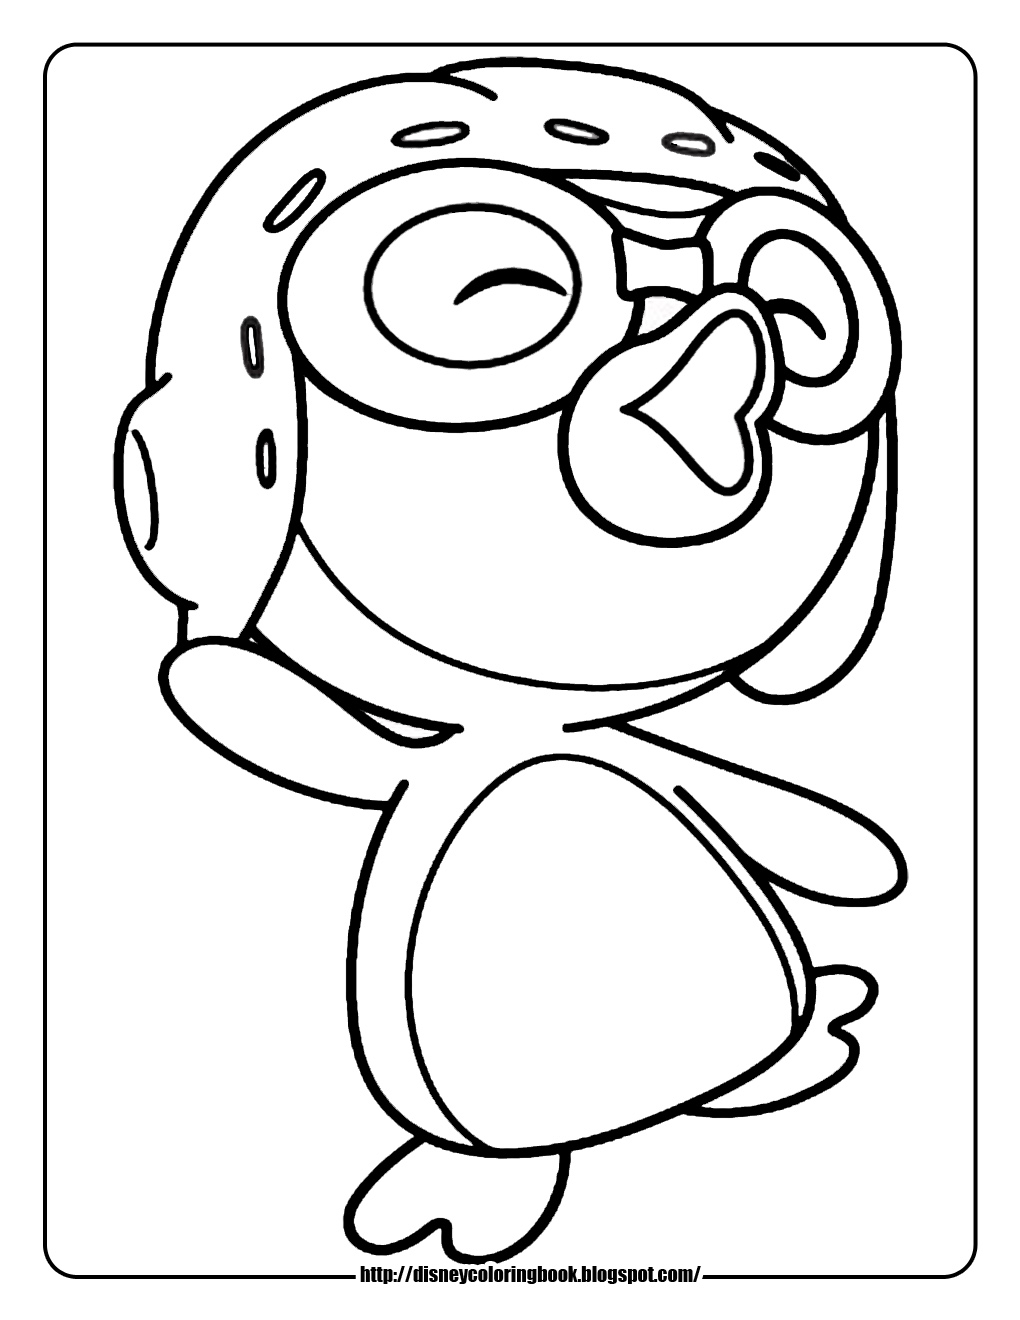 coloring page of penguin printable pictures of penguins free download on clipartmag of coloring penguin page